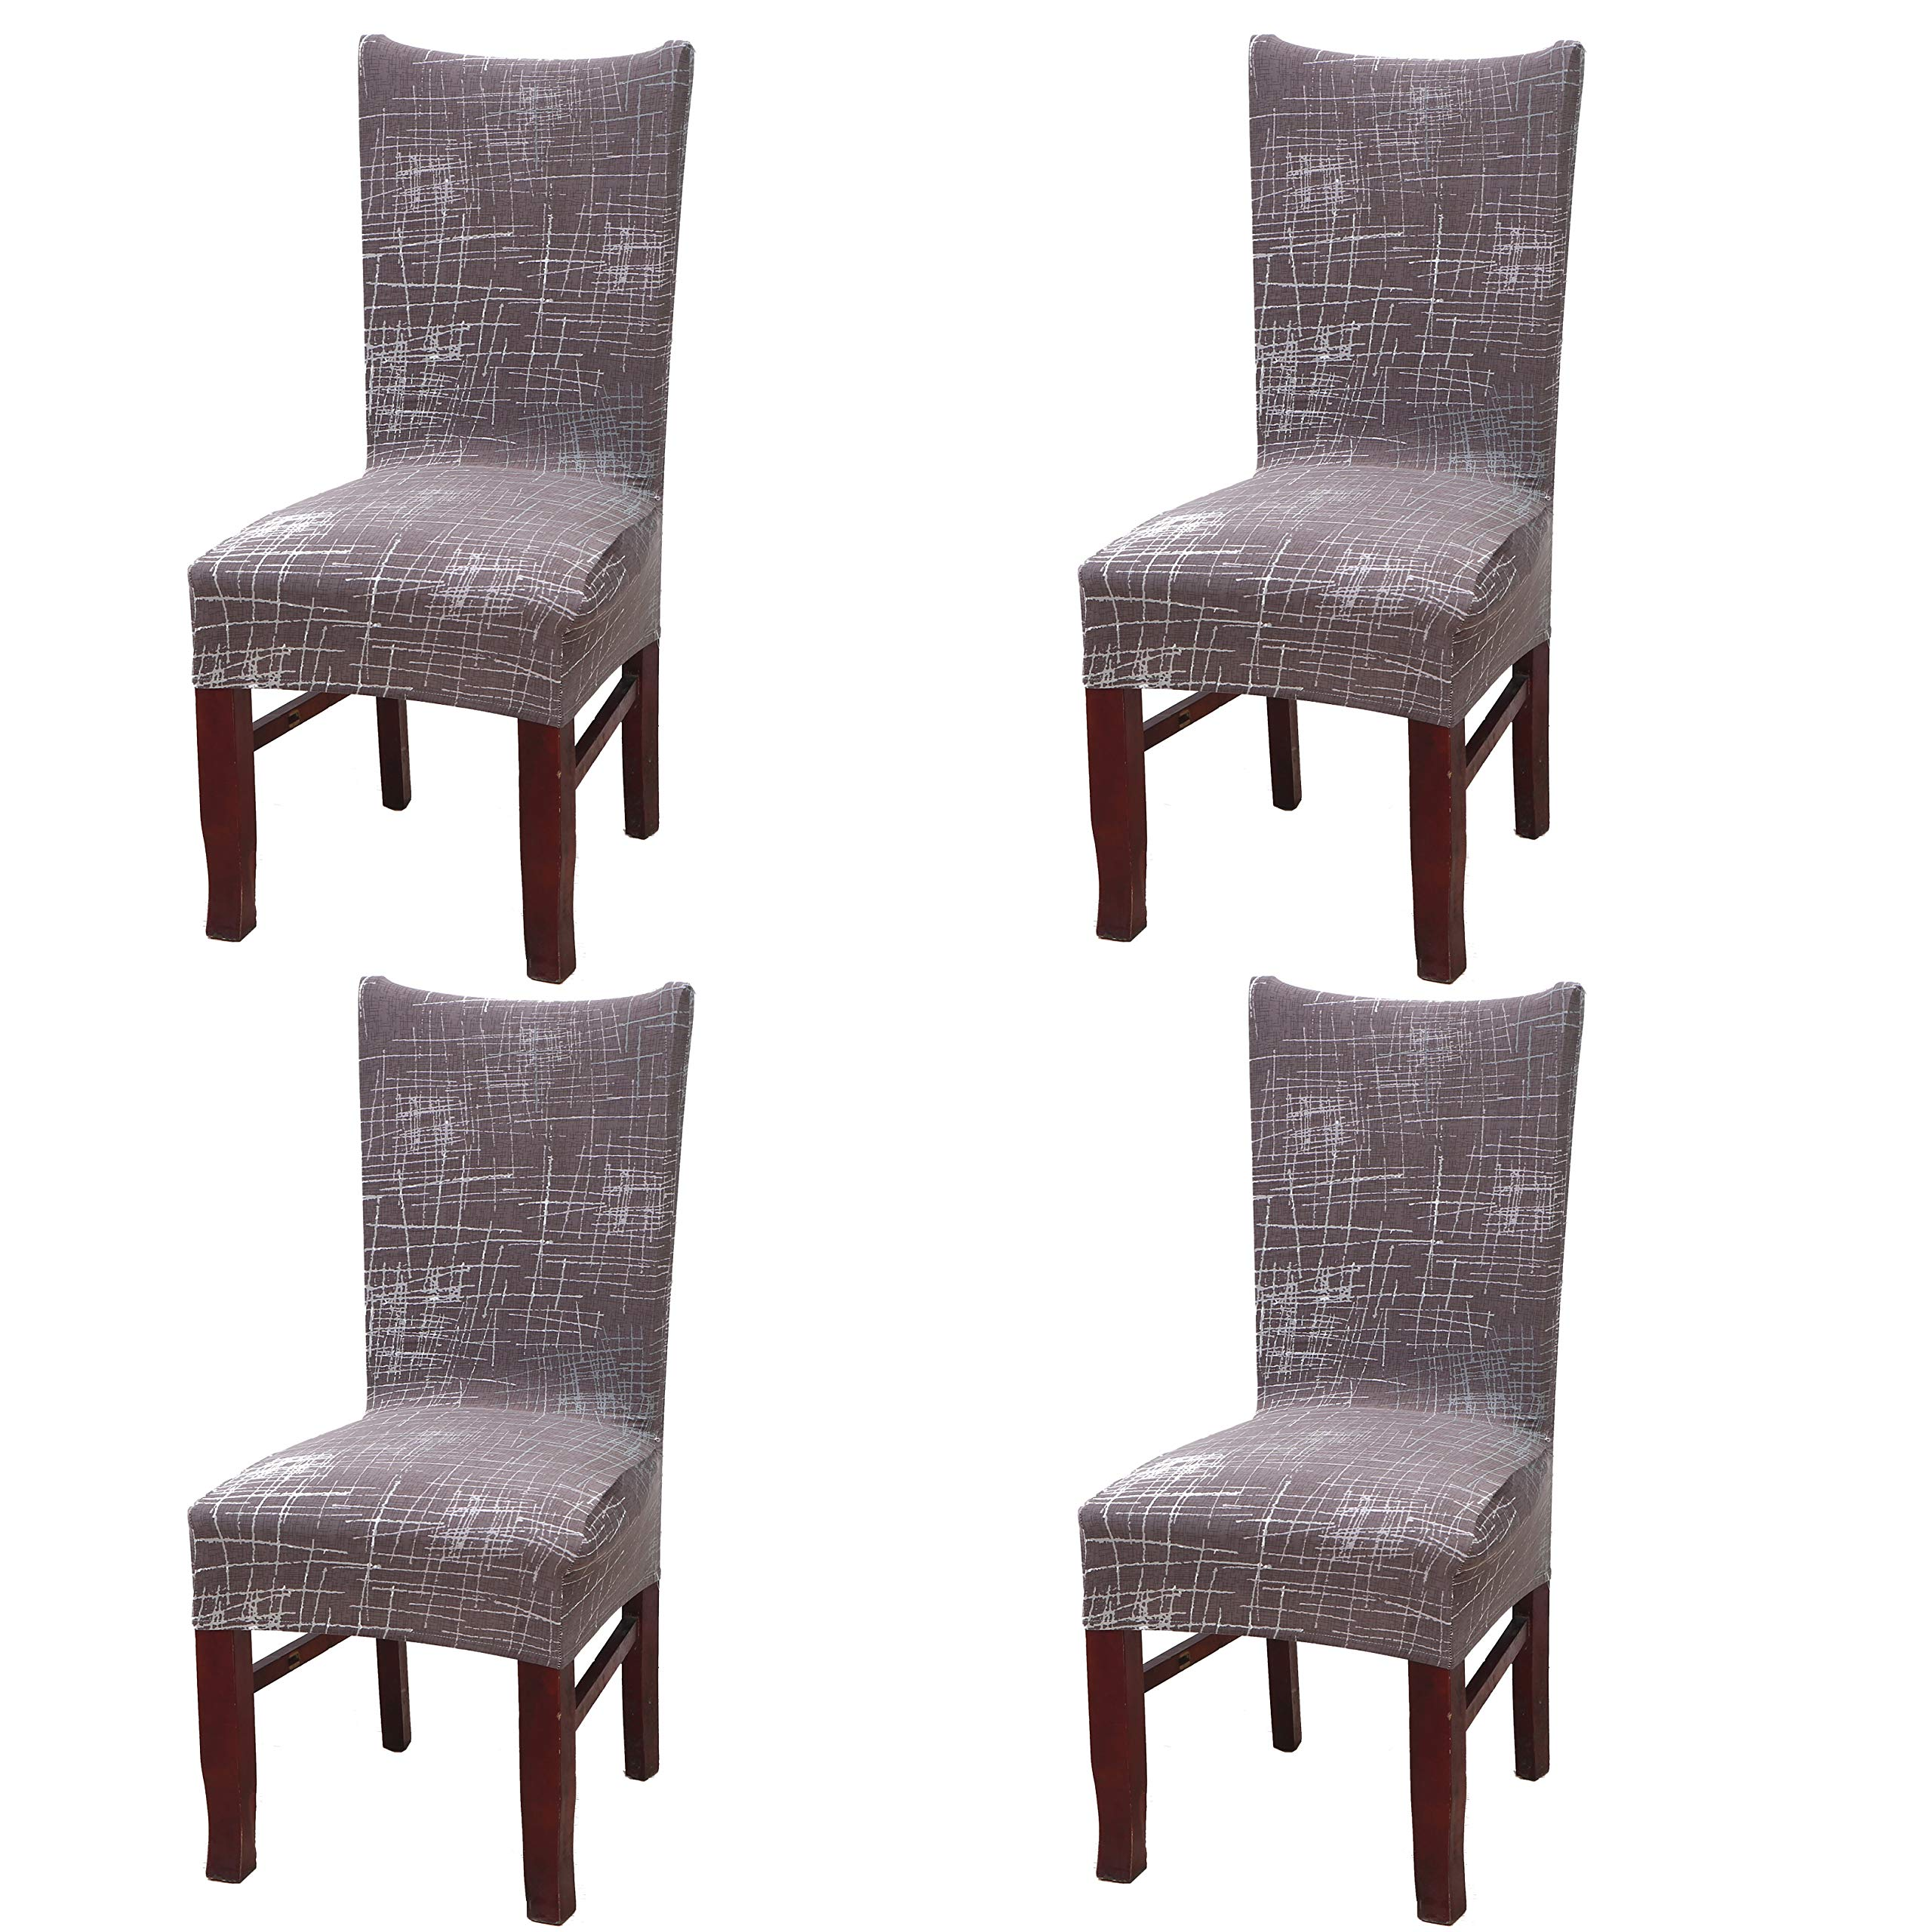 Dining Chair Slipcover Patterns – FREE PATTERNS